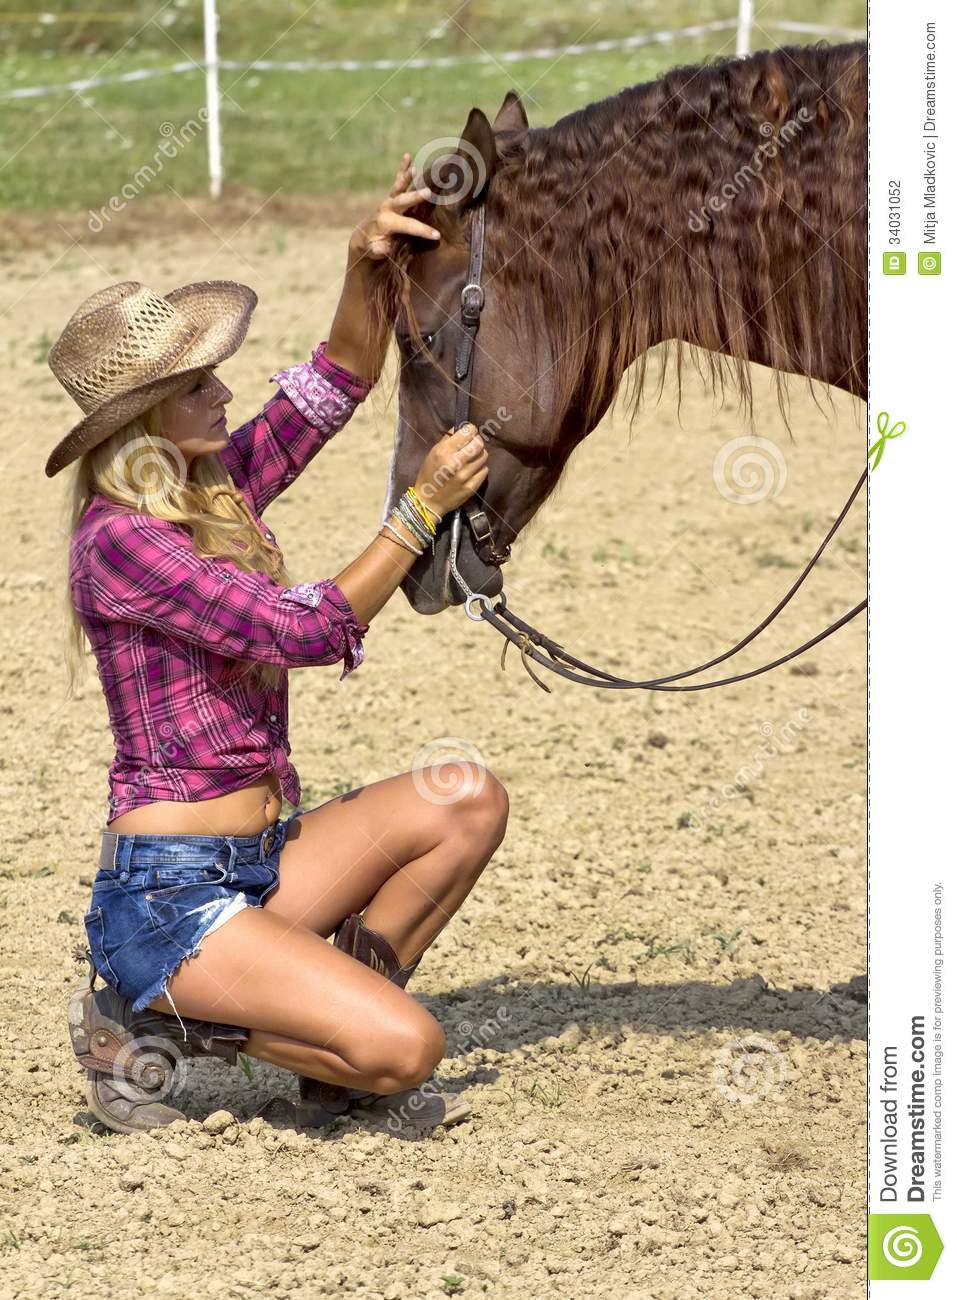 Caressing The Horse Stock Photography - Image: 34031052